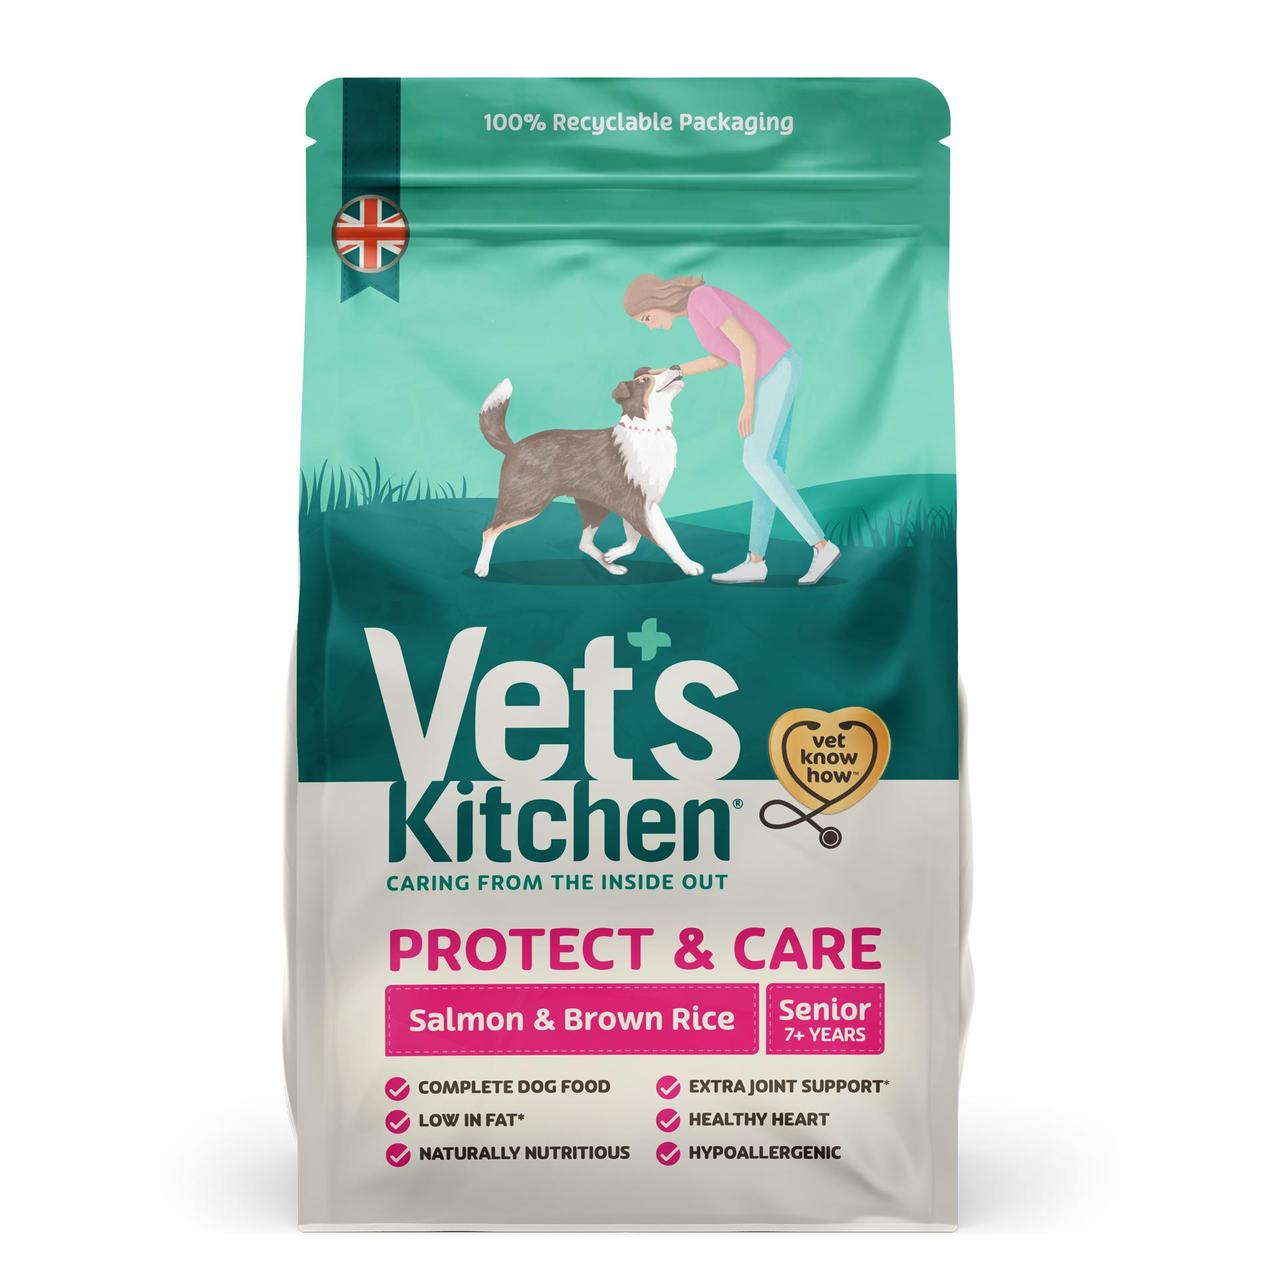 An image of Vets Kitchen Senior Dog Salmon & Brown Rice